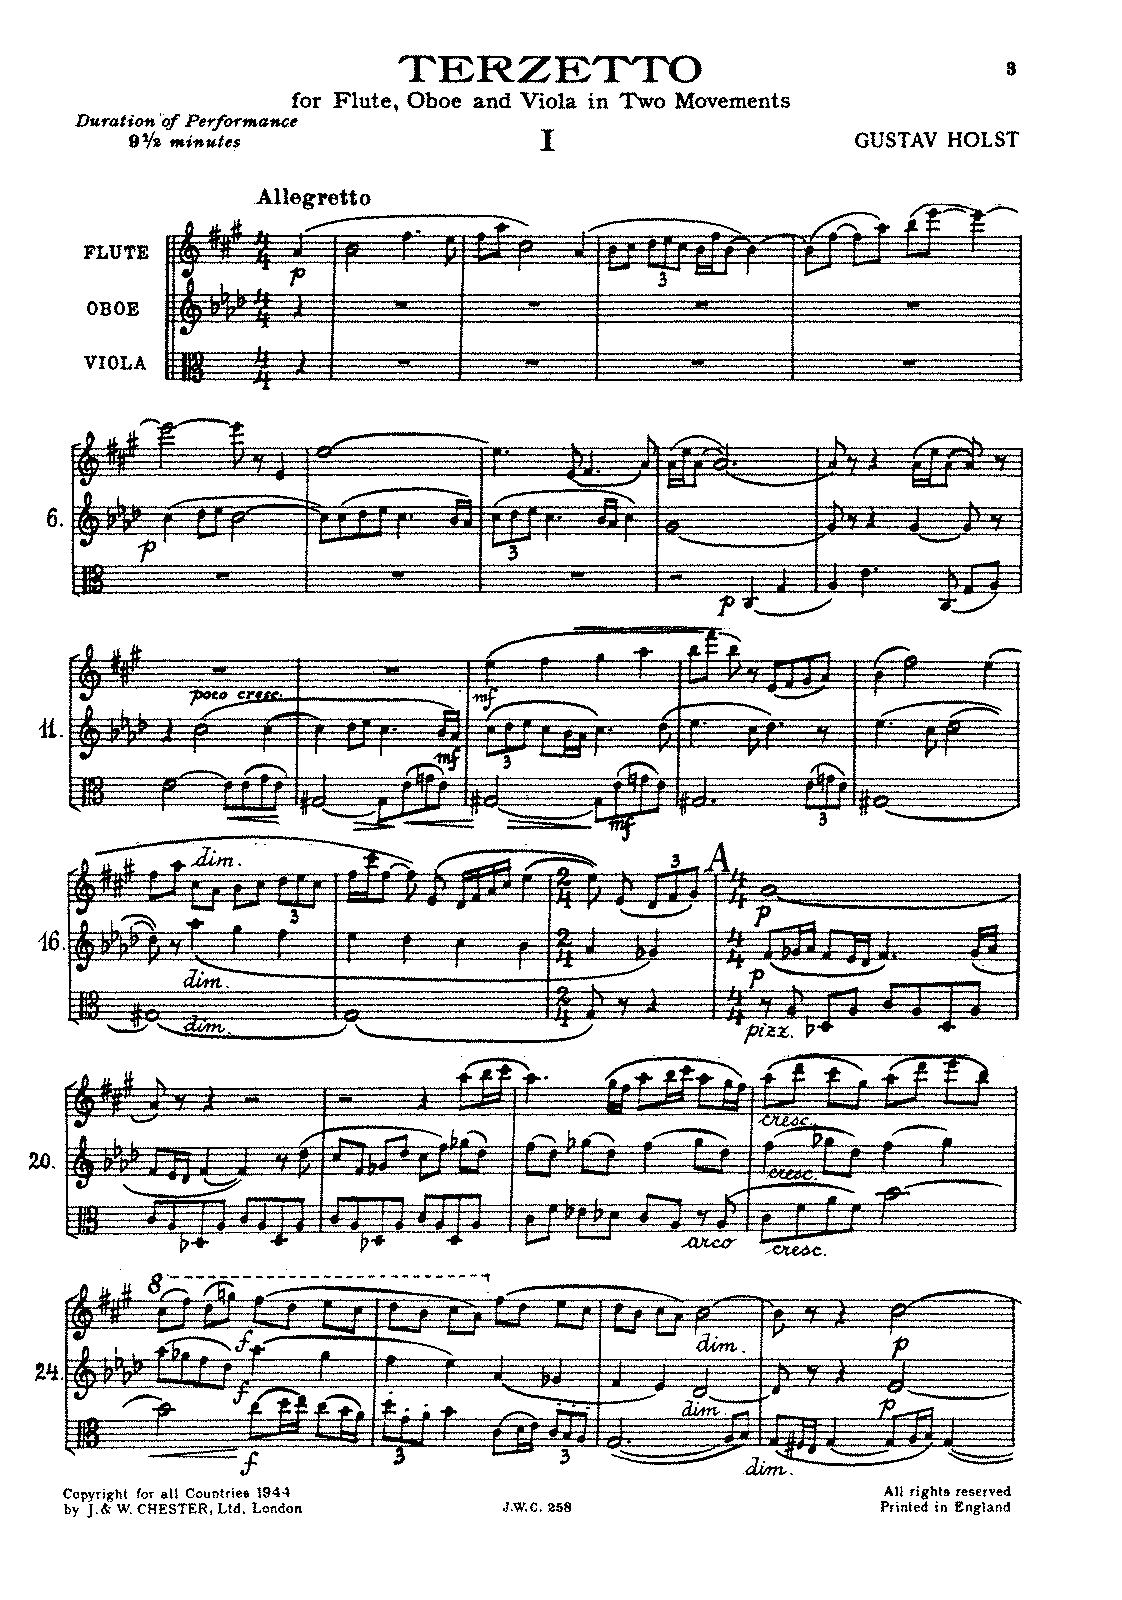 PMLP49249-Holst - Terzetto for flute, oboe and viola (score).pdf